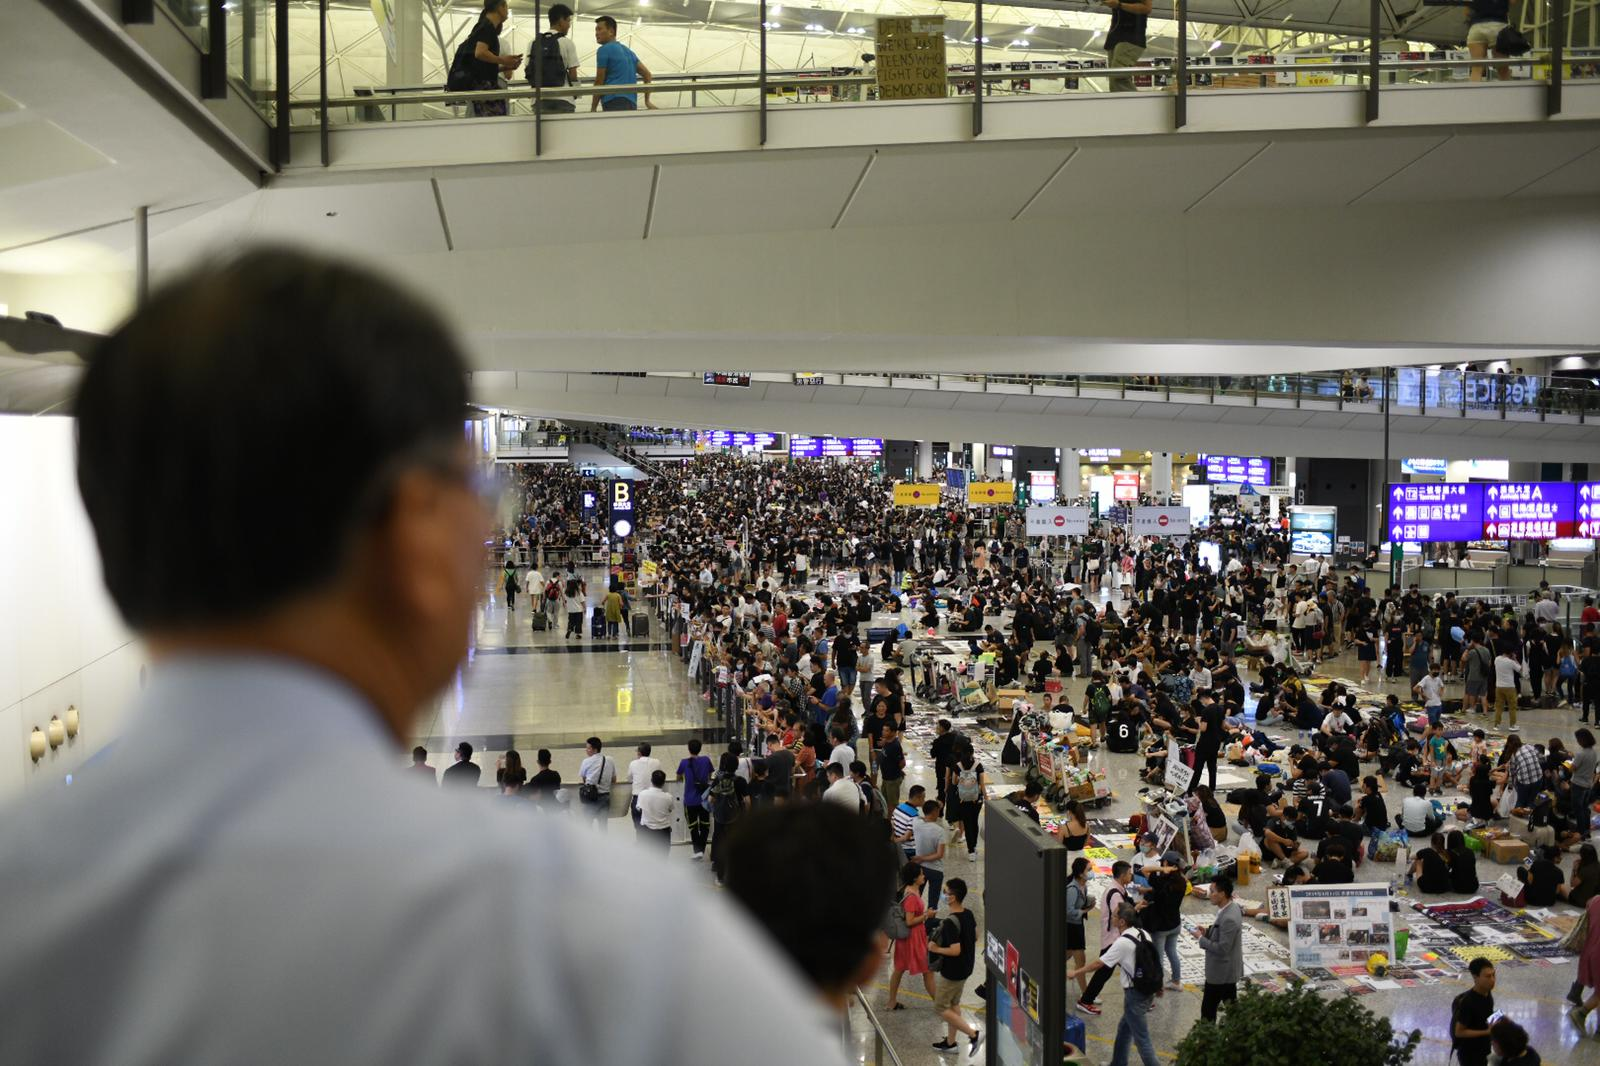 Hundreds of protesters occupy Hong Kong's international airport for the second day in a row.